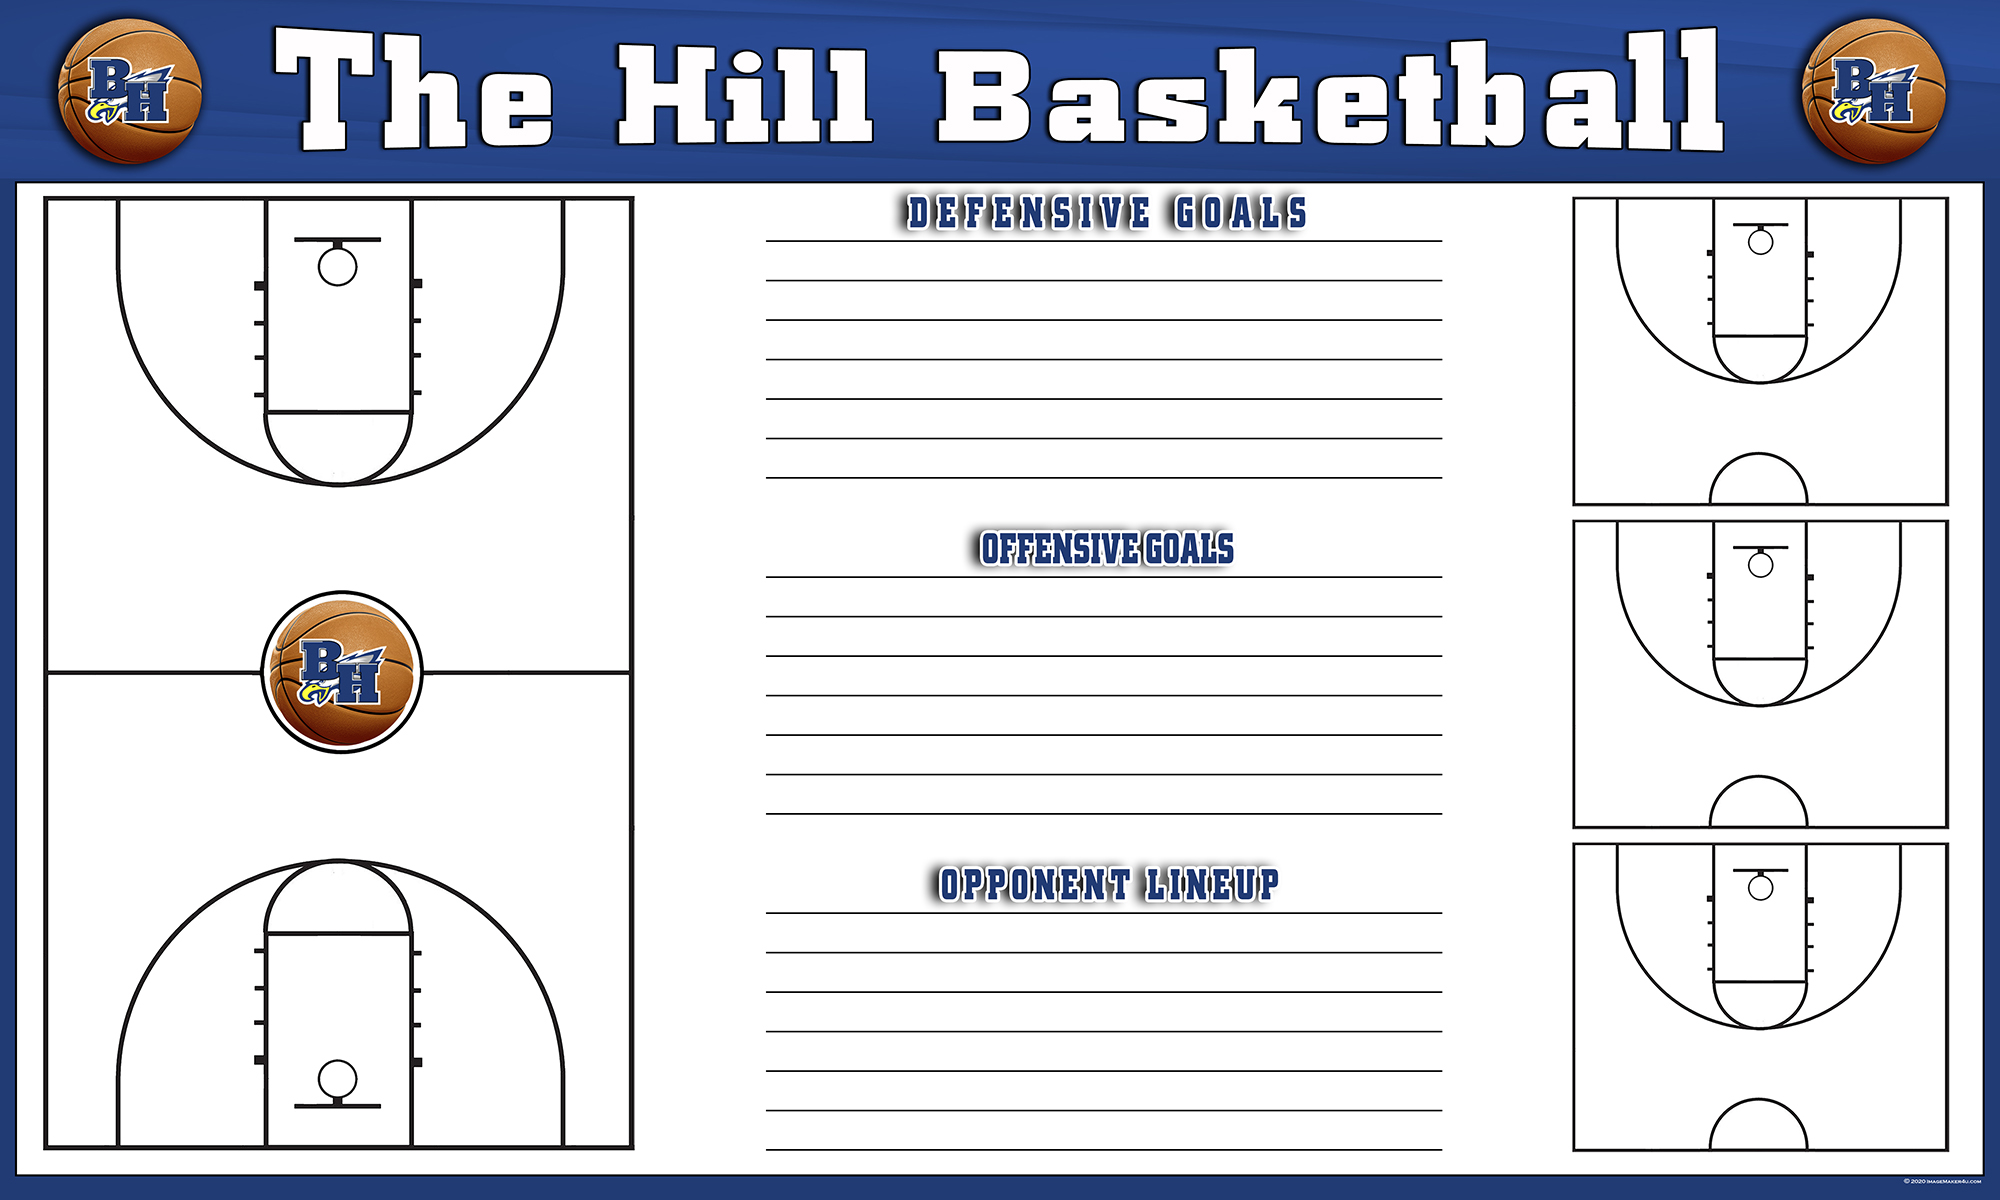 Barbers Hill MBB 2020 Planning board 36in x 60in